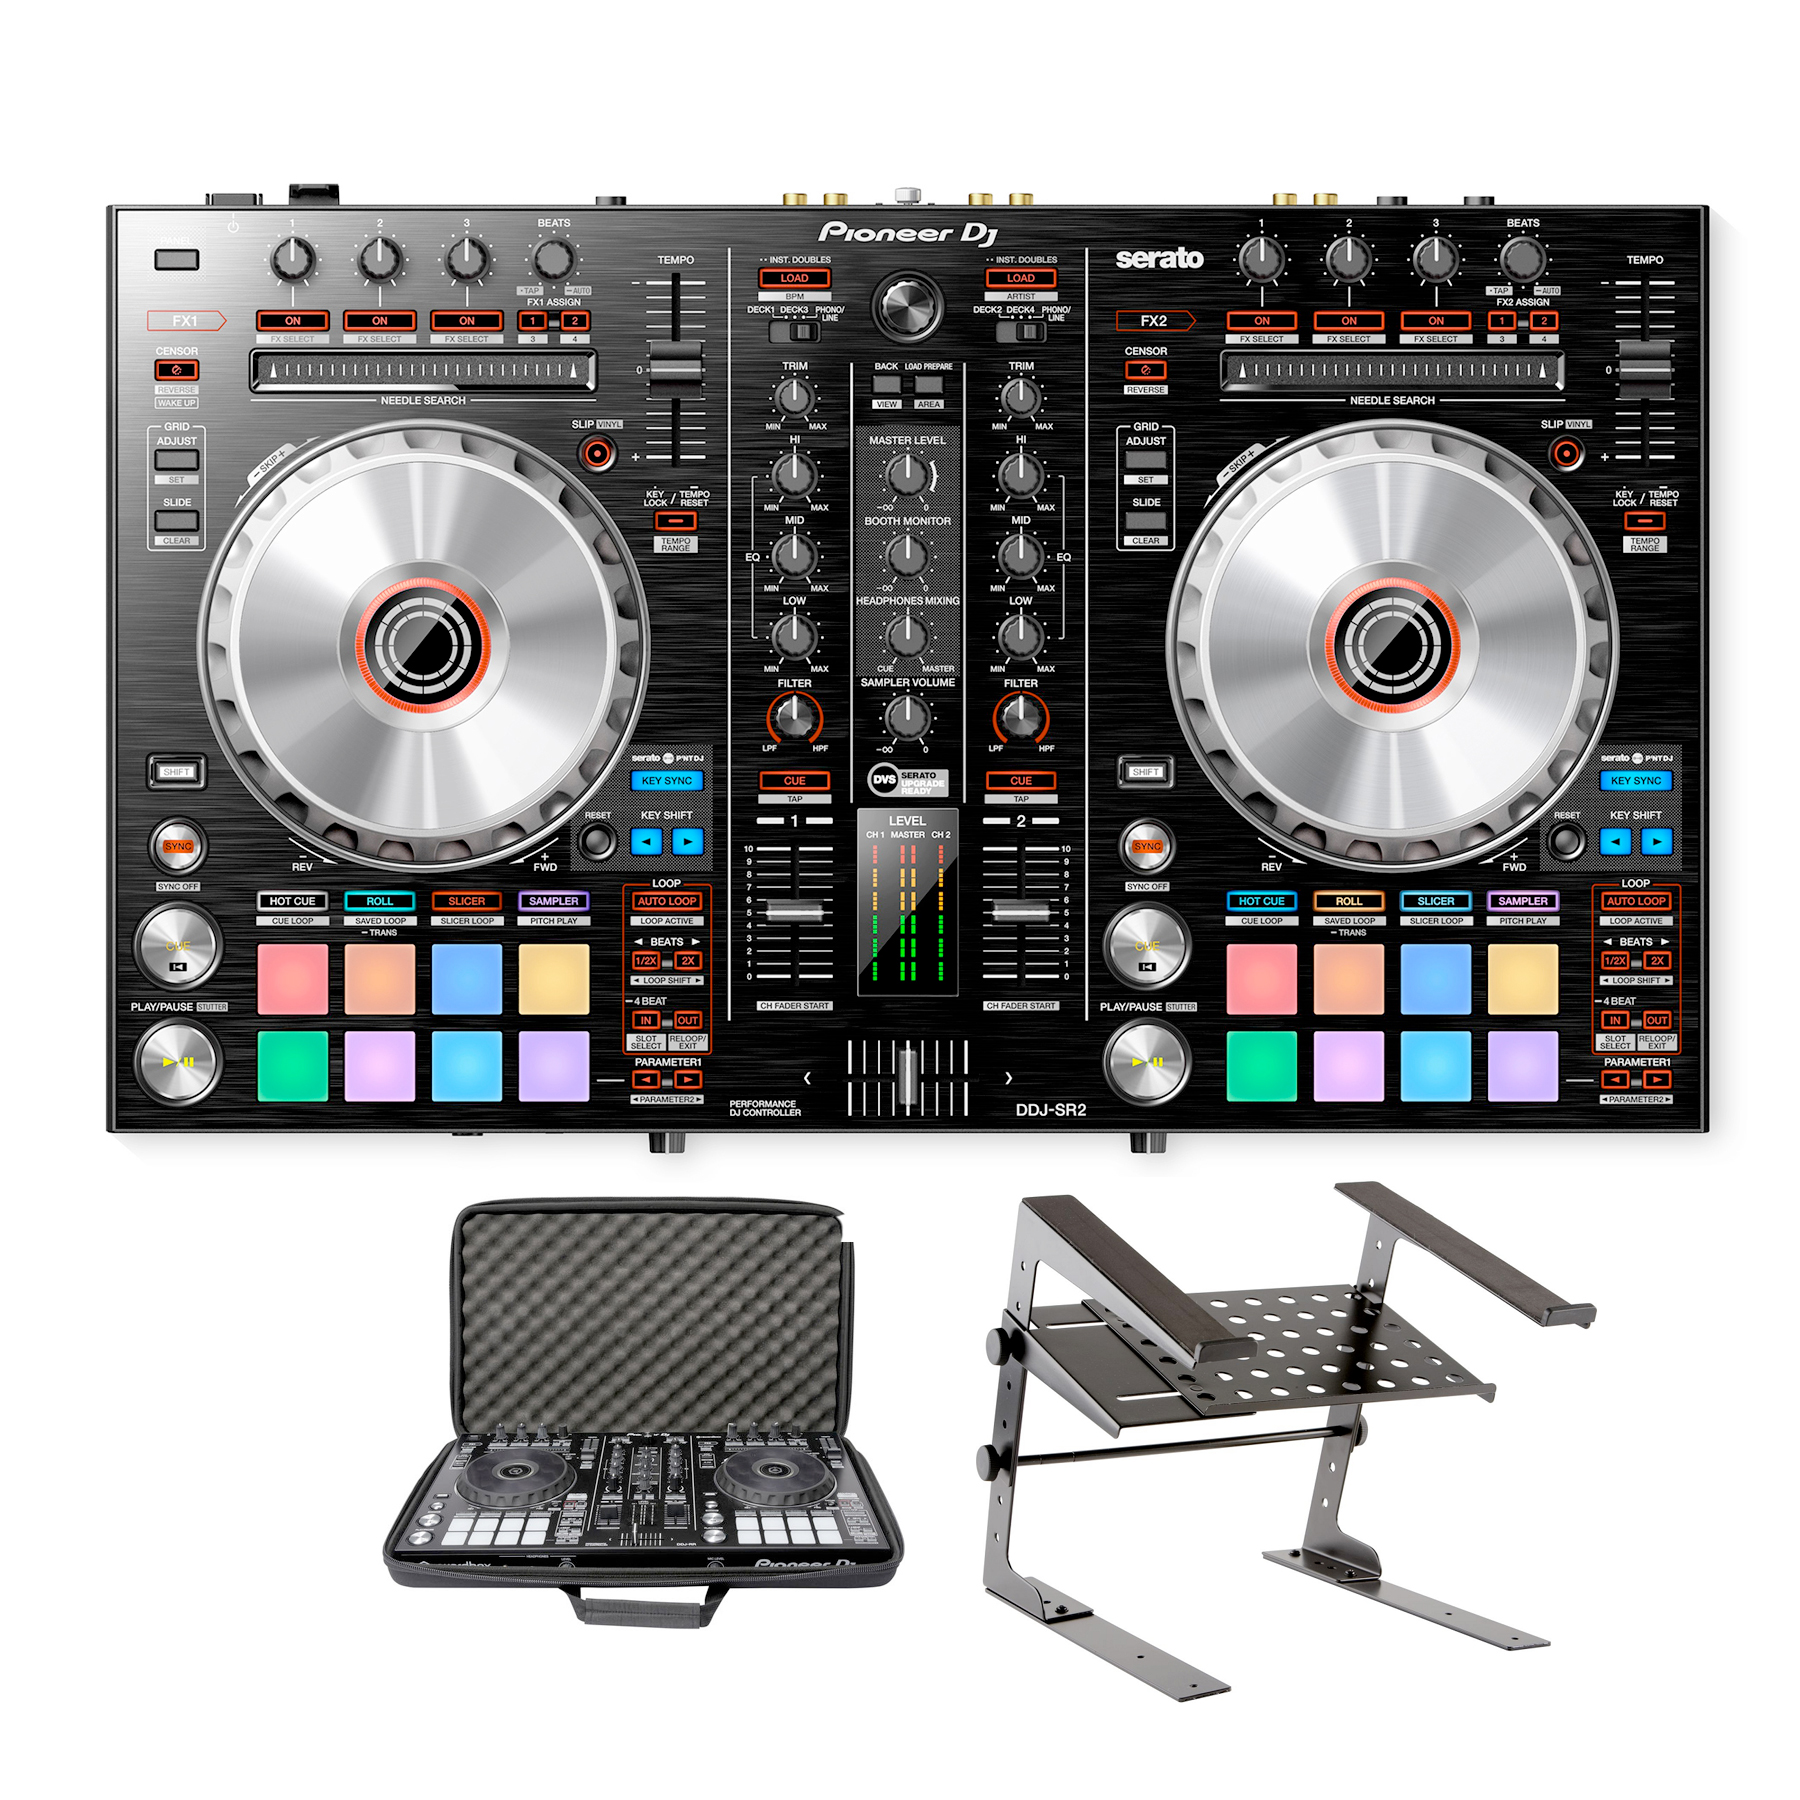 Pioneer Dj Ddj Sr2 With Laptop Stand And Bag Package Deal